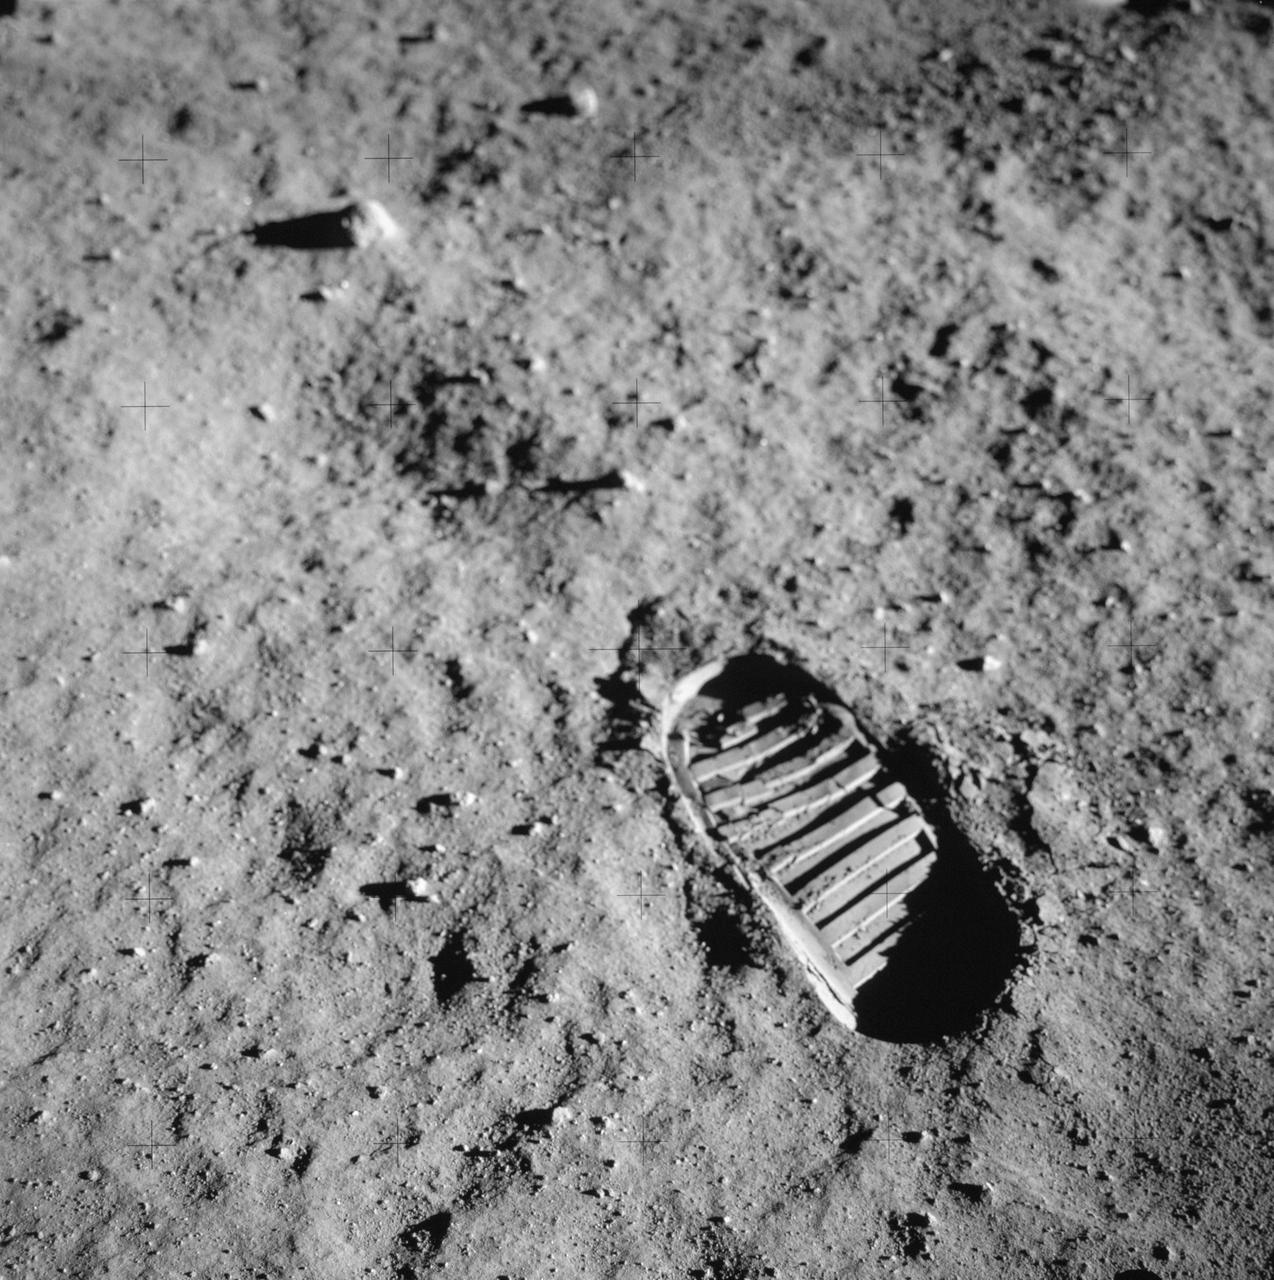 Photograph of close-up of astronaut footprint in lunar soil